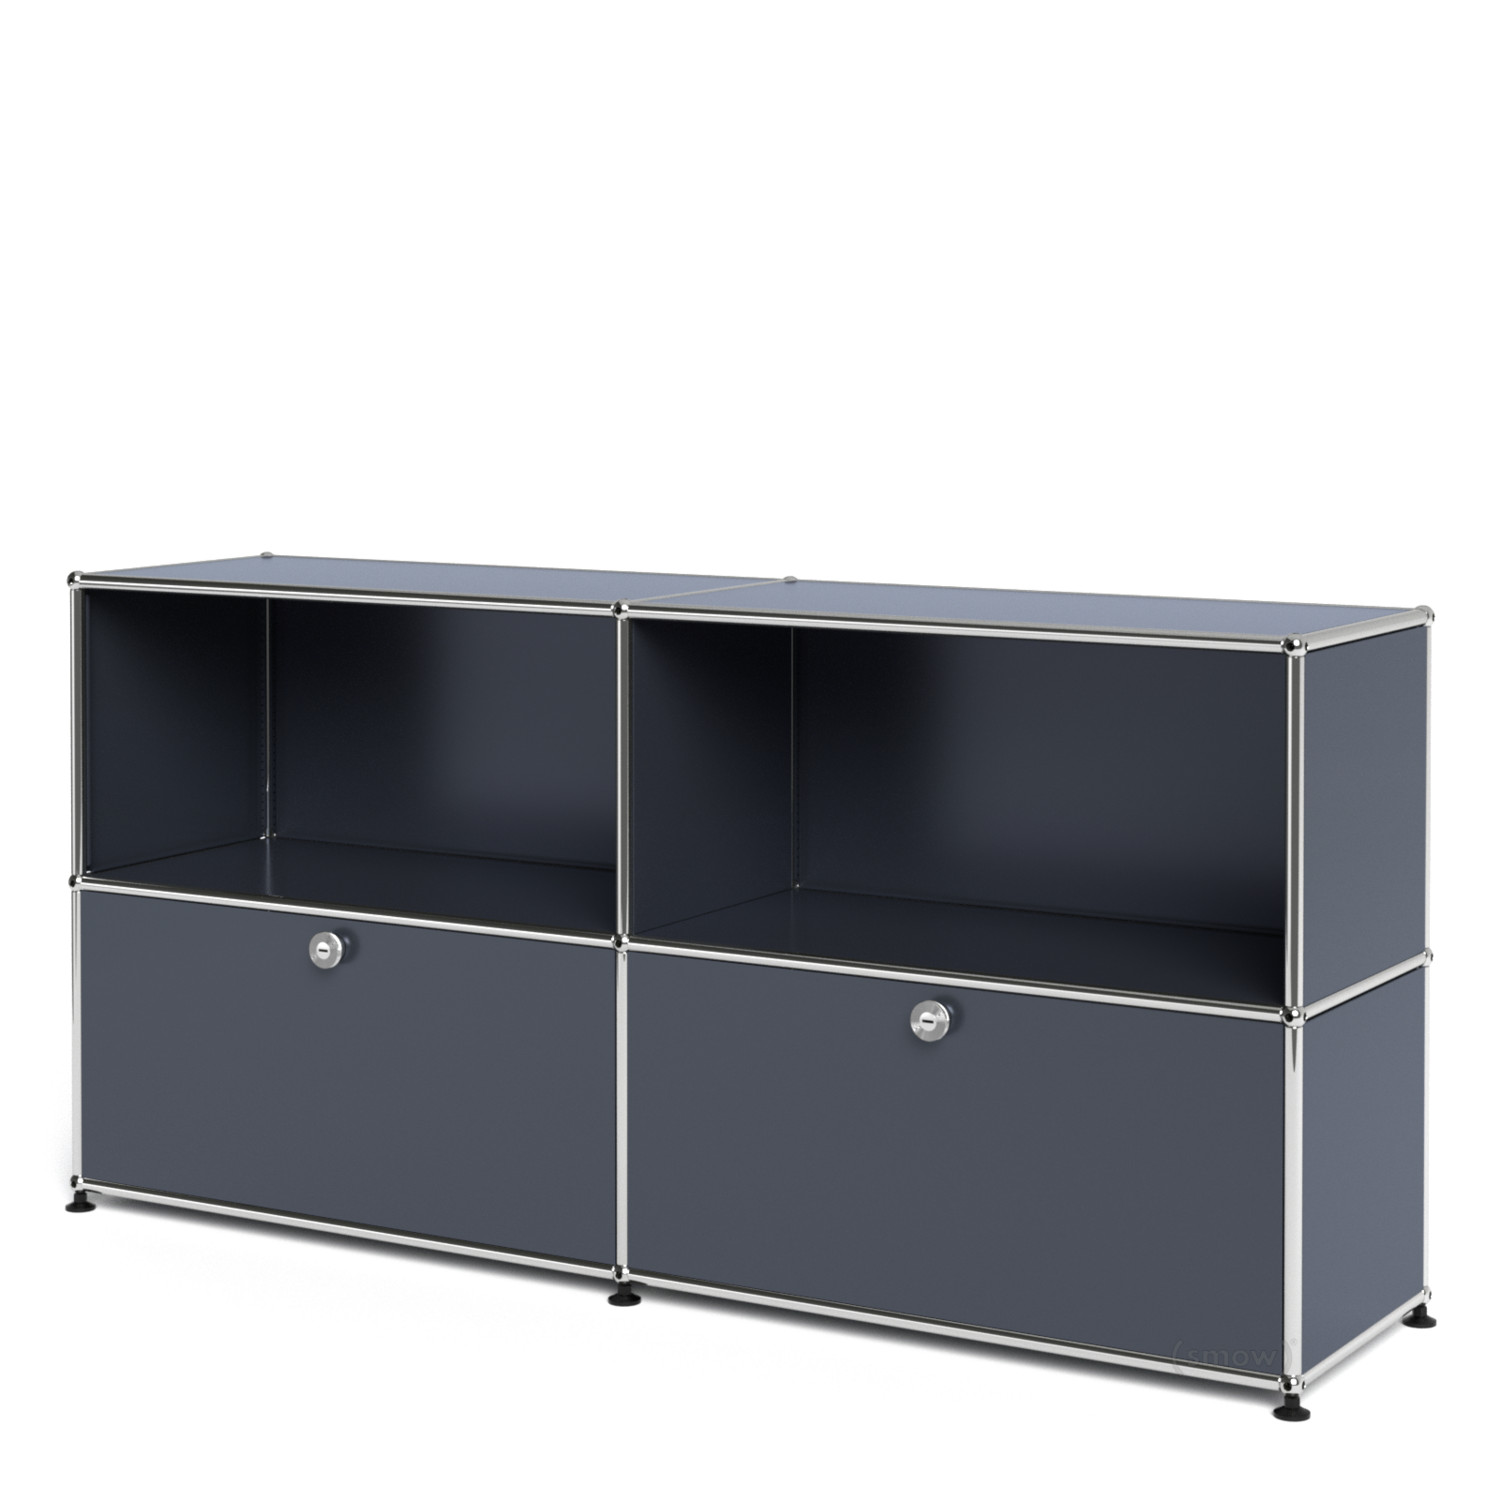 usm haller sideboard l with 2 drop down doors anthracite. Black Bedroom Furniture Sets. Home Design Ideas